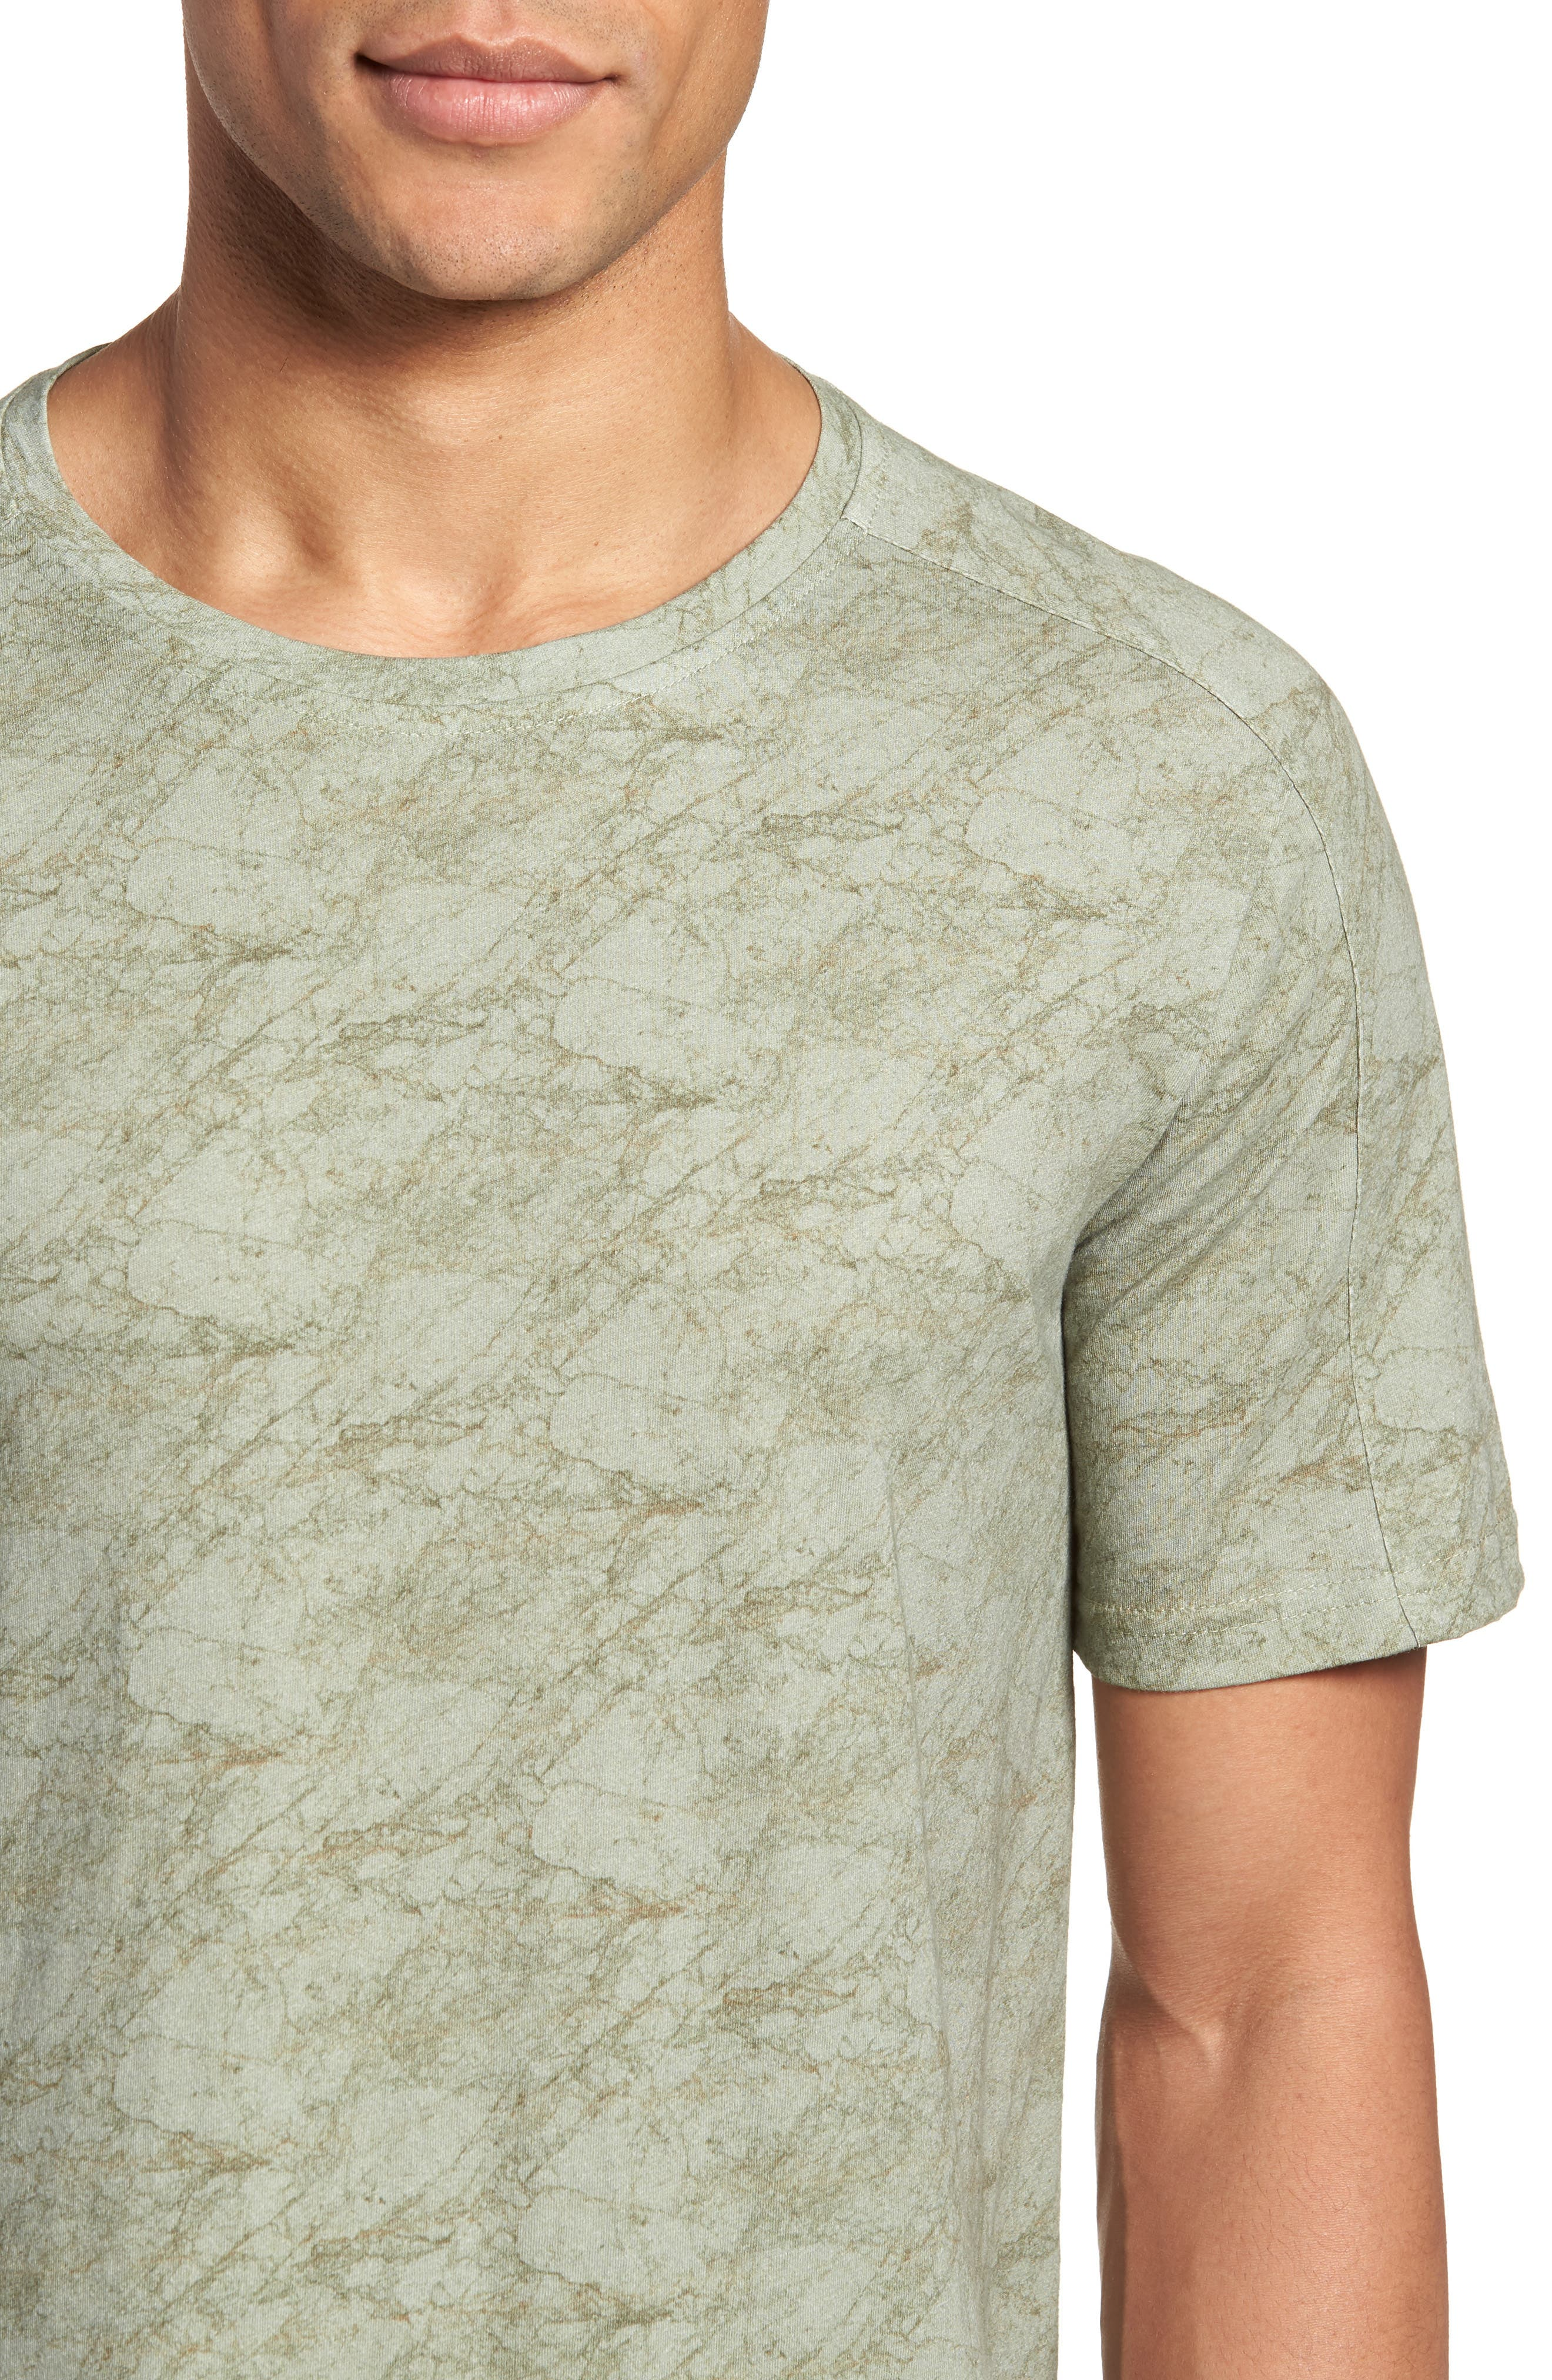 Chelsea Marble Print T-Shirt,                             Alternate thumbnail 4, color,                             Green